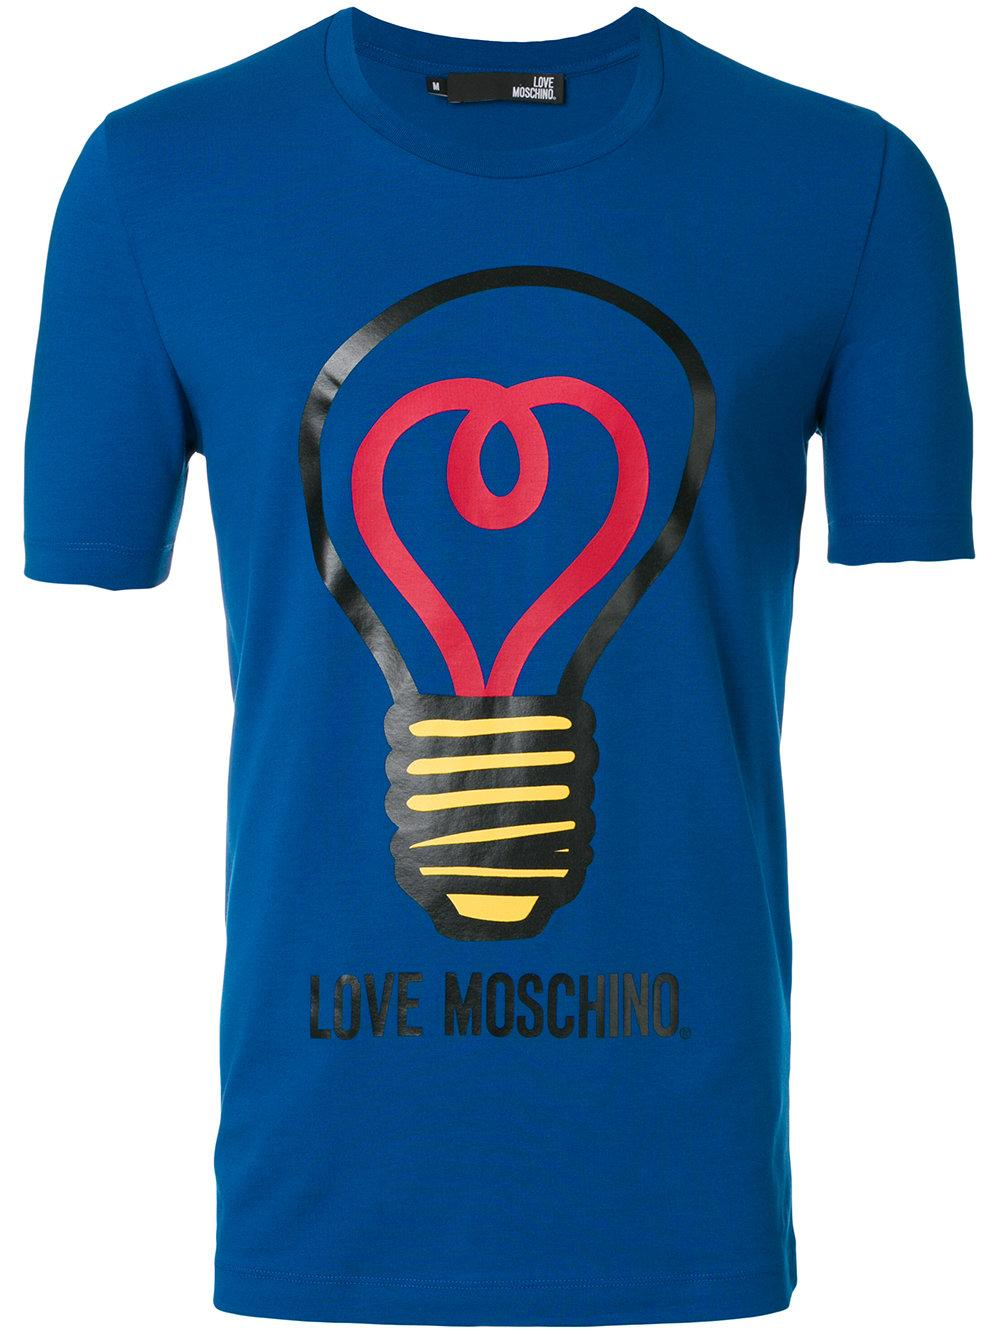 love moschino lightbulb print t shirt in blue for men lyst. Black Bedroom Furniture Sets. Home Design Ideas